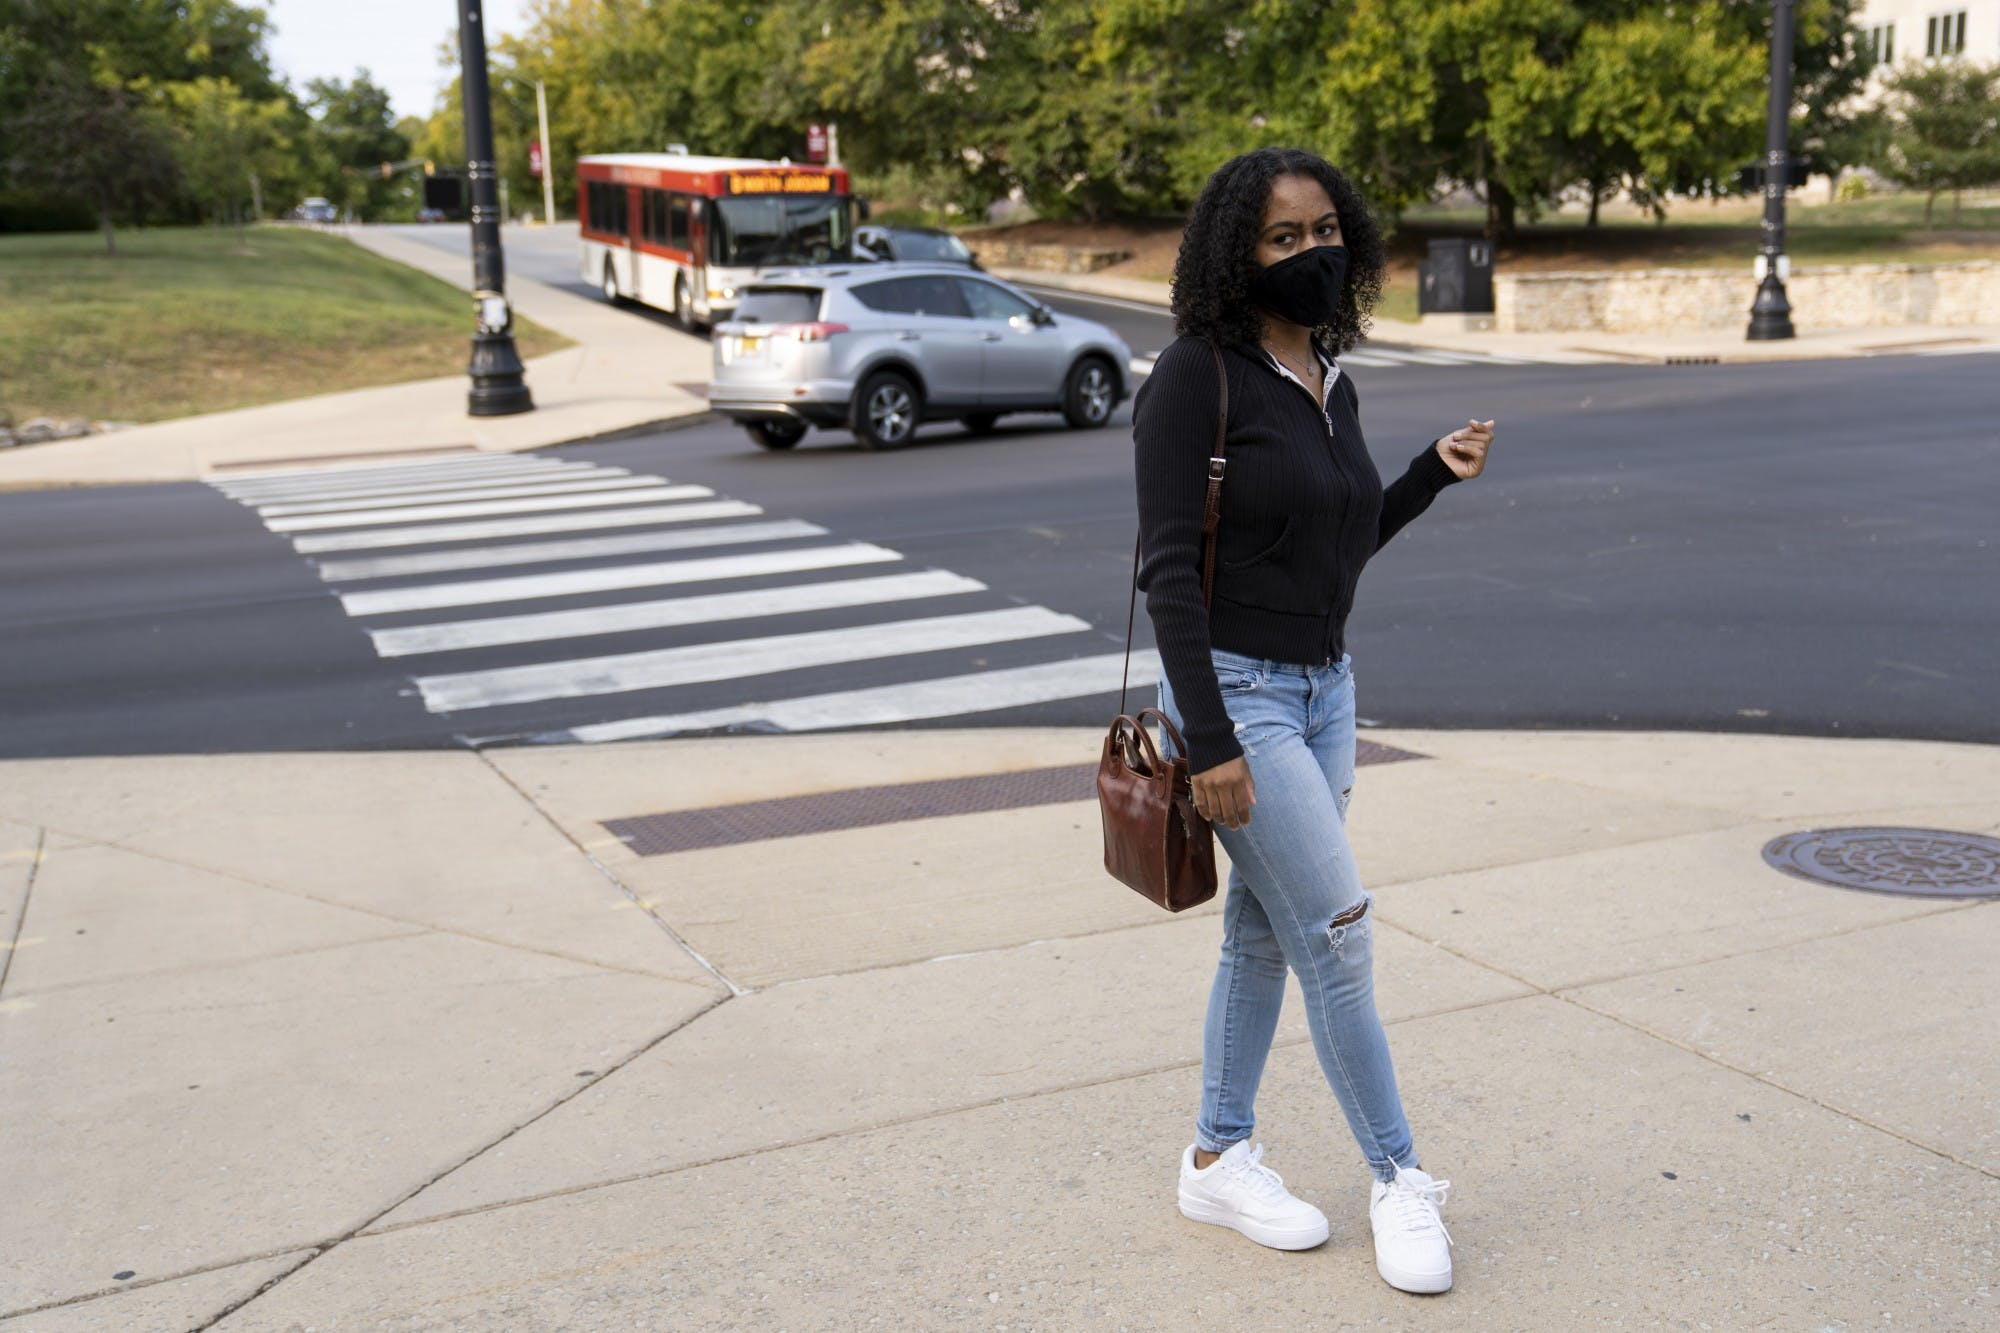 Aluko talks about the second bias incident that also happened during her freshman year of college. Afterwards, she tried to not walk home later at night by herself in order to avoid anything like that happening to her again.